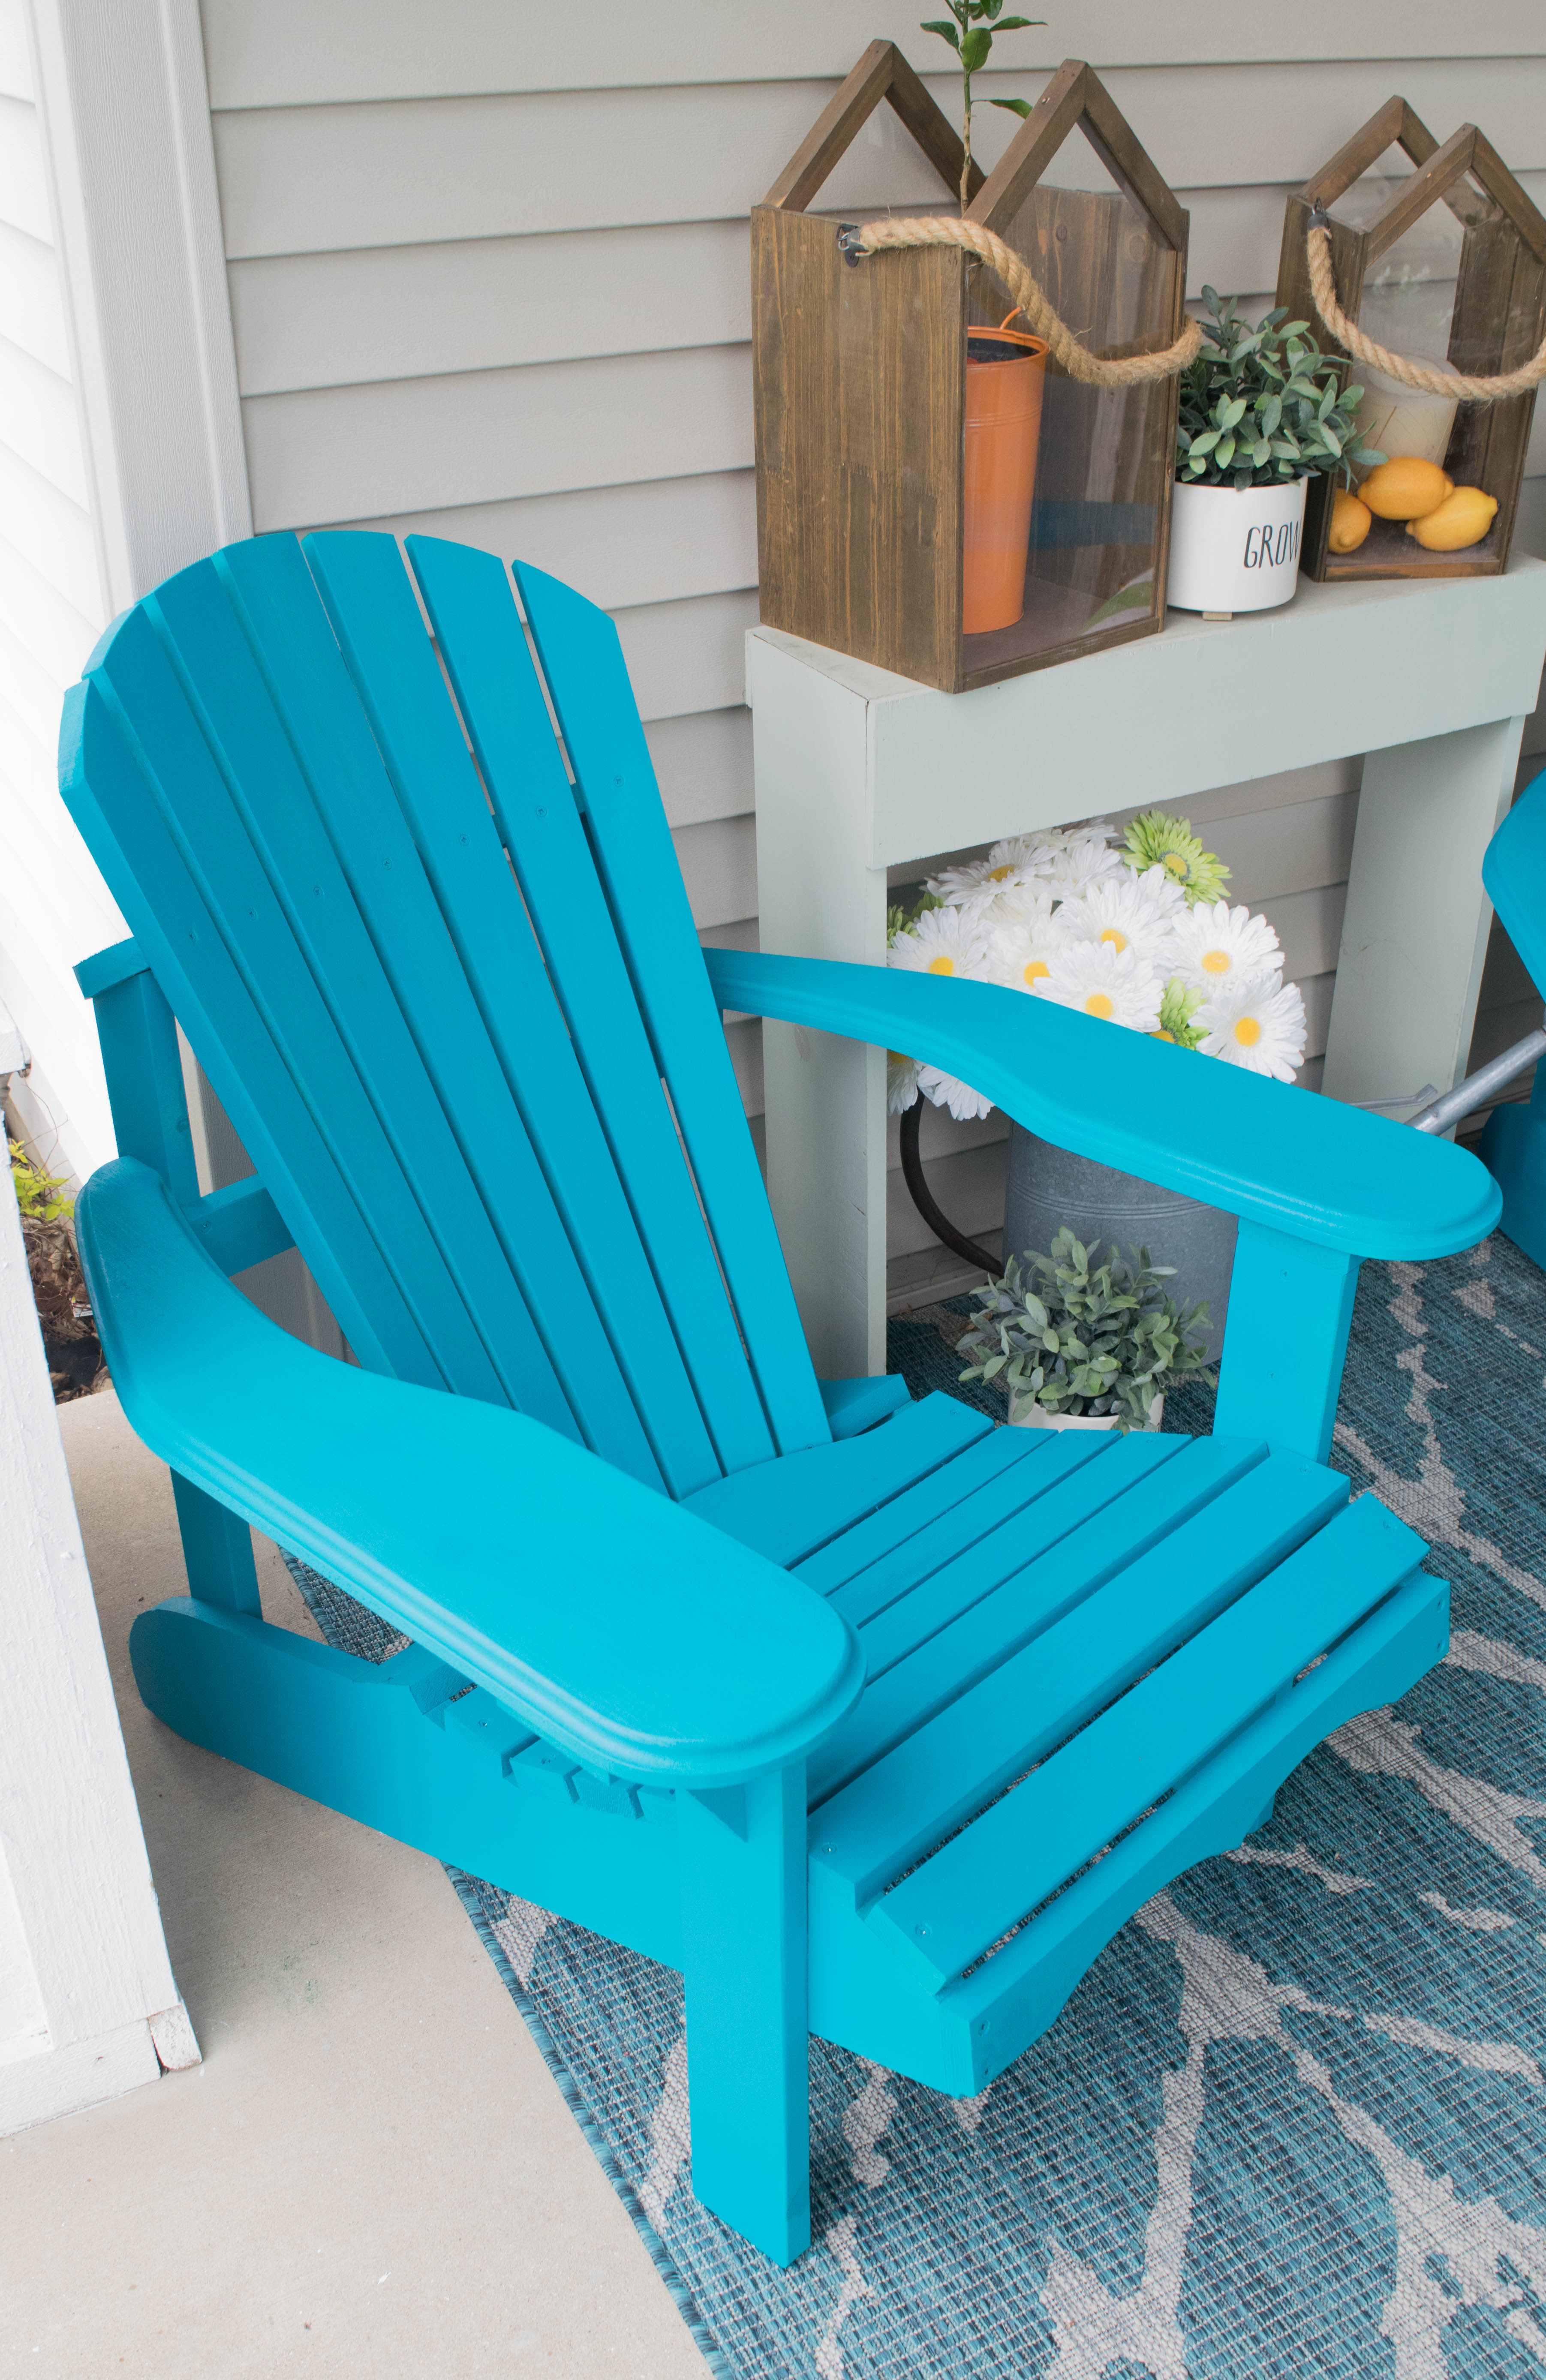 Charmant How To Build Adirondack Chairs